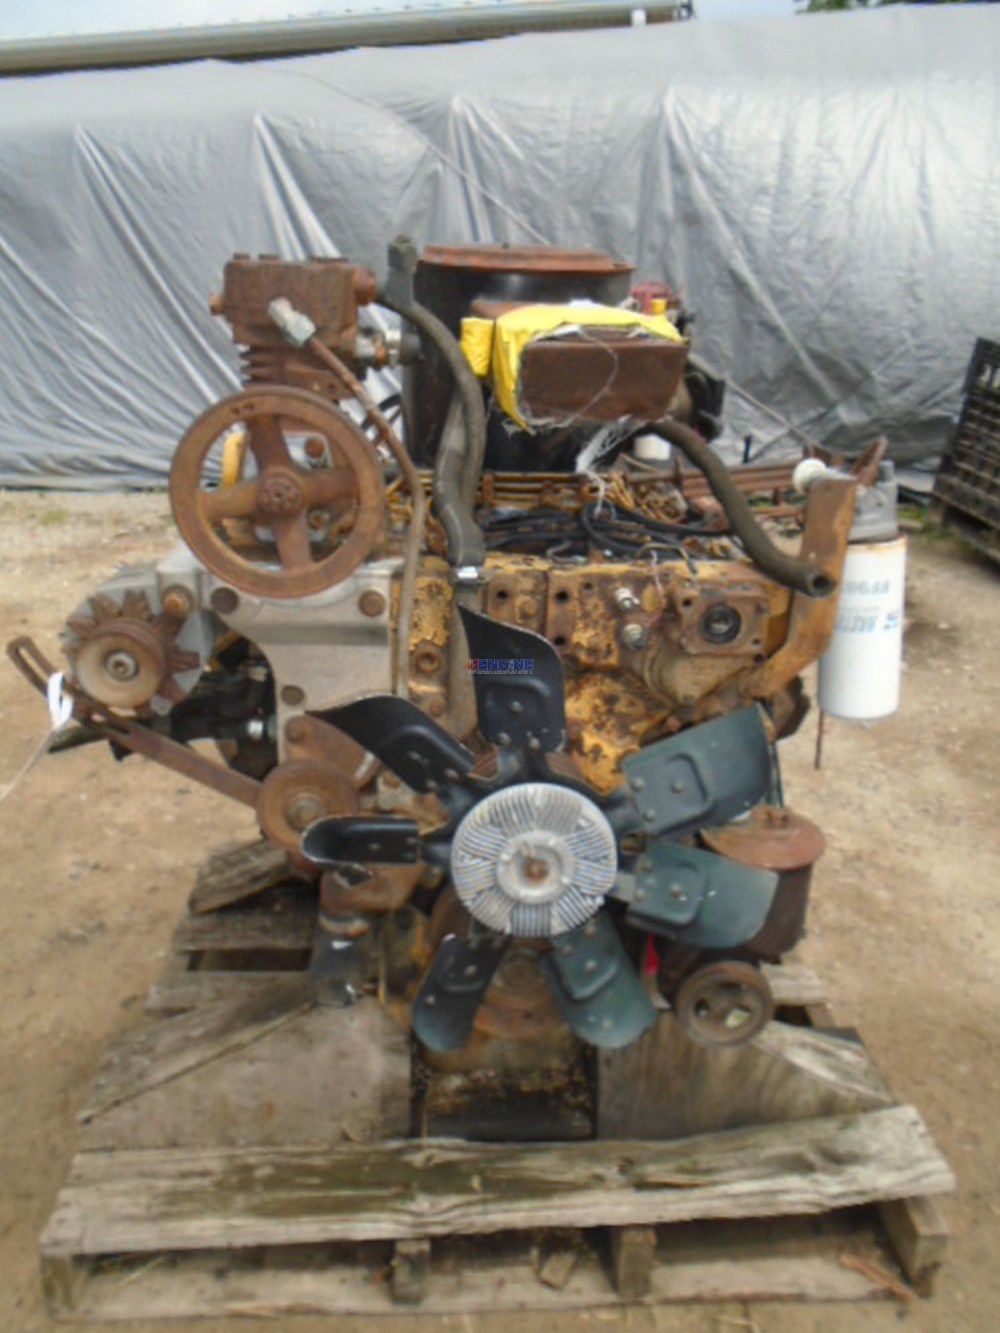 medium resolution of cat 3208 engines and cat 3208 engine parts are always in stock at capital reman exchange including